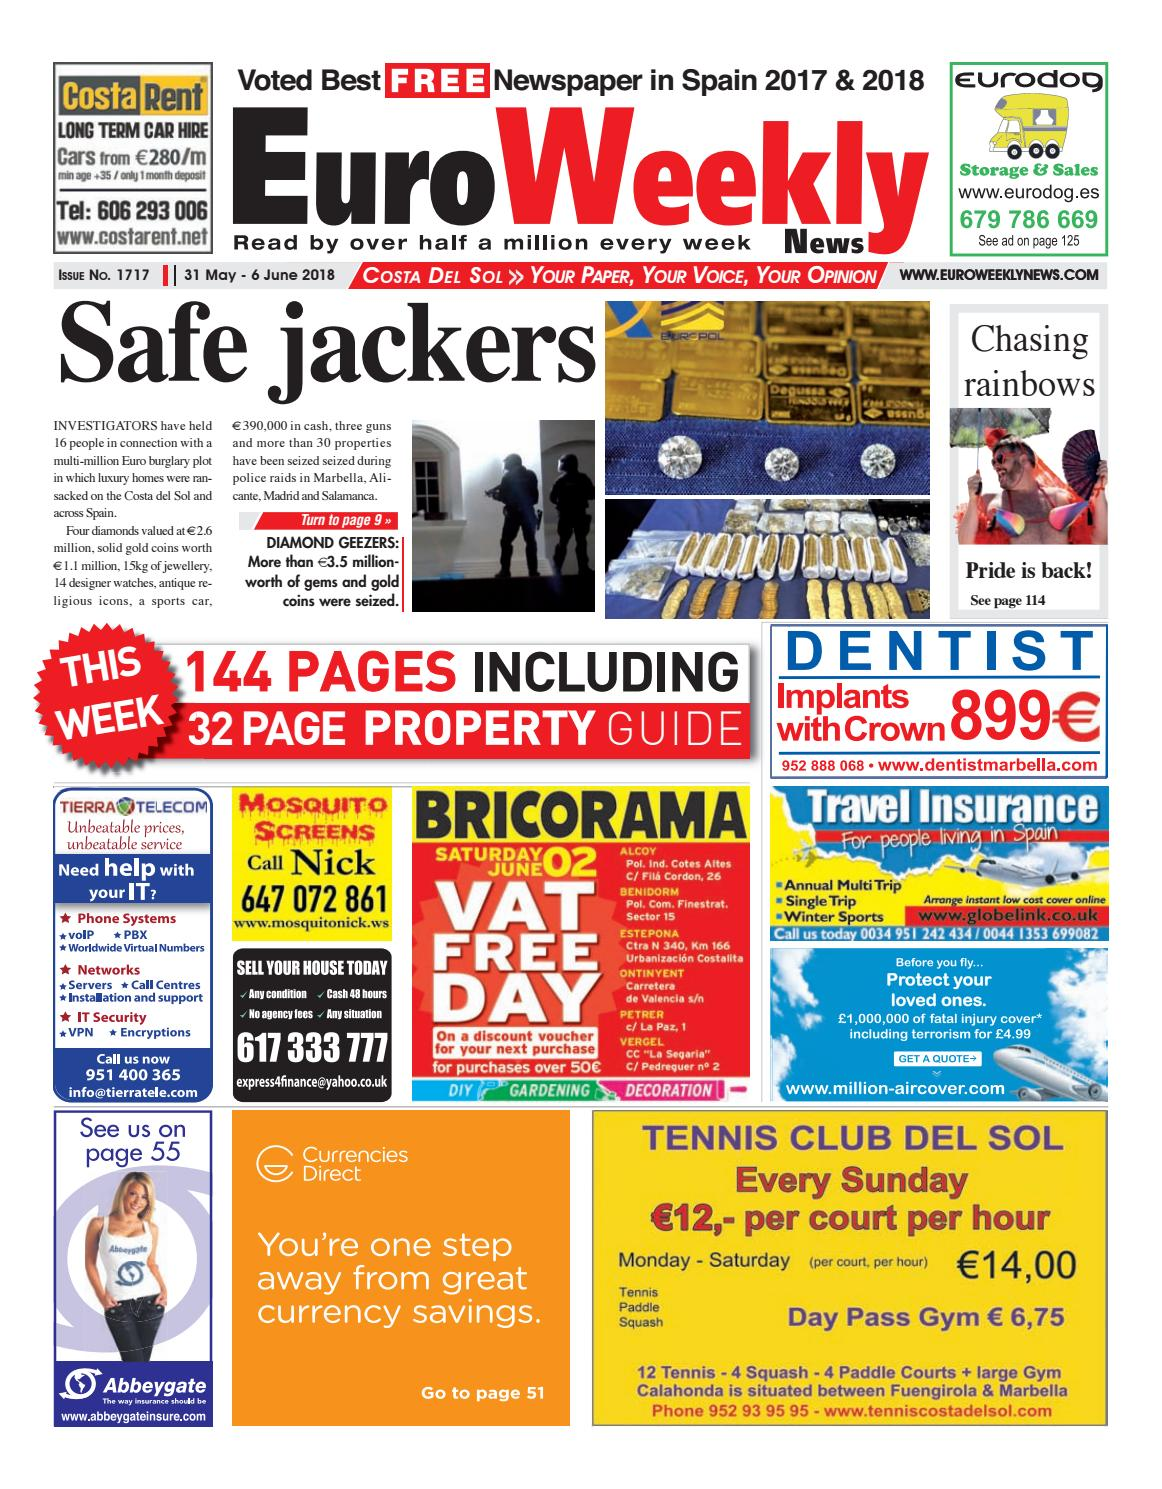 Euro Weekly News - Costa del Sol 31 May - 6 June 2018 Issue 1717 by